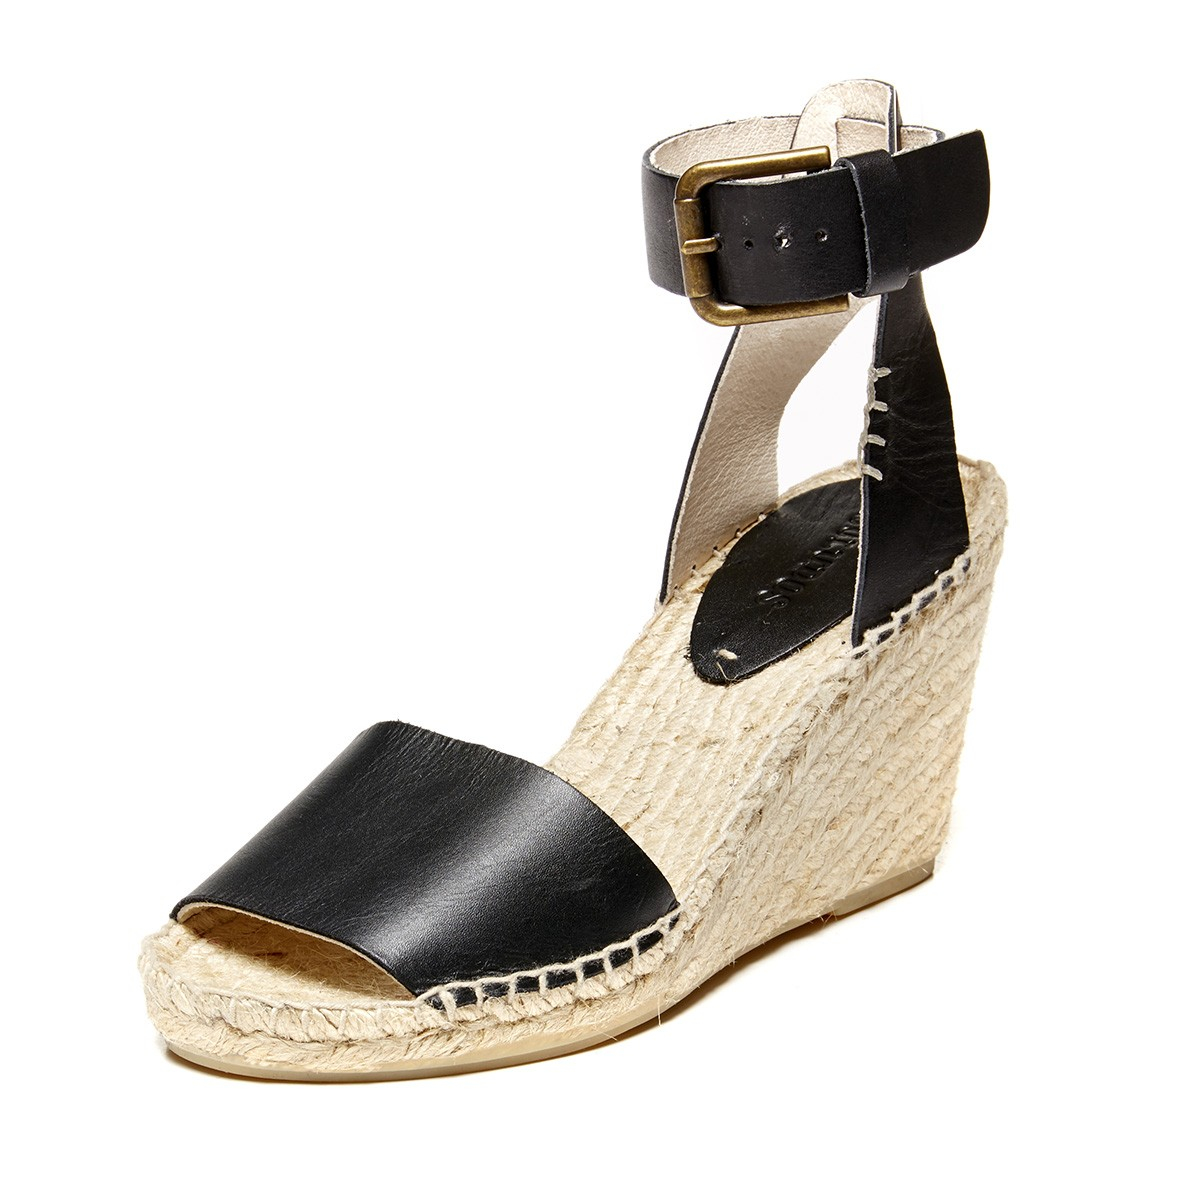 4caccf0d44a Soludos Open Toe Leather Wedge Sandal in Black - Lyst